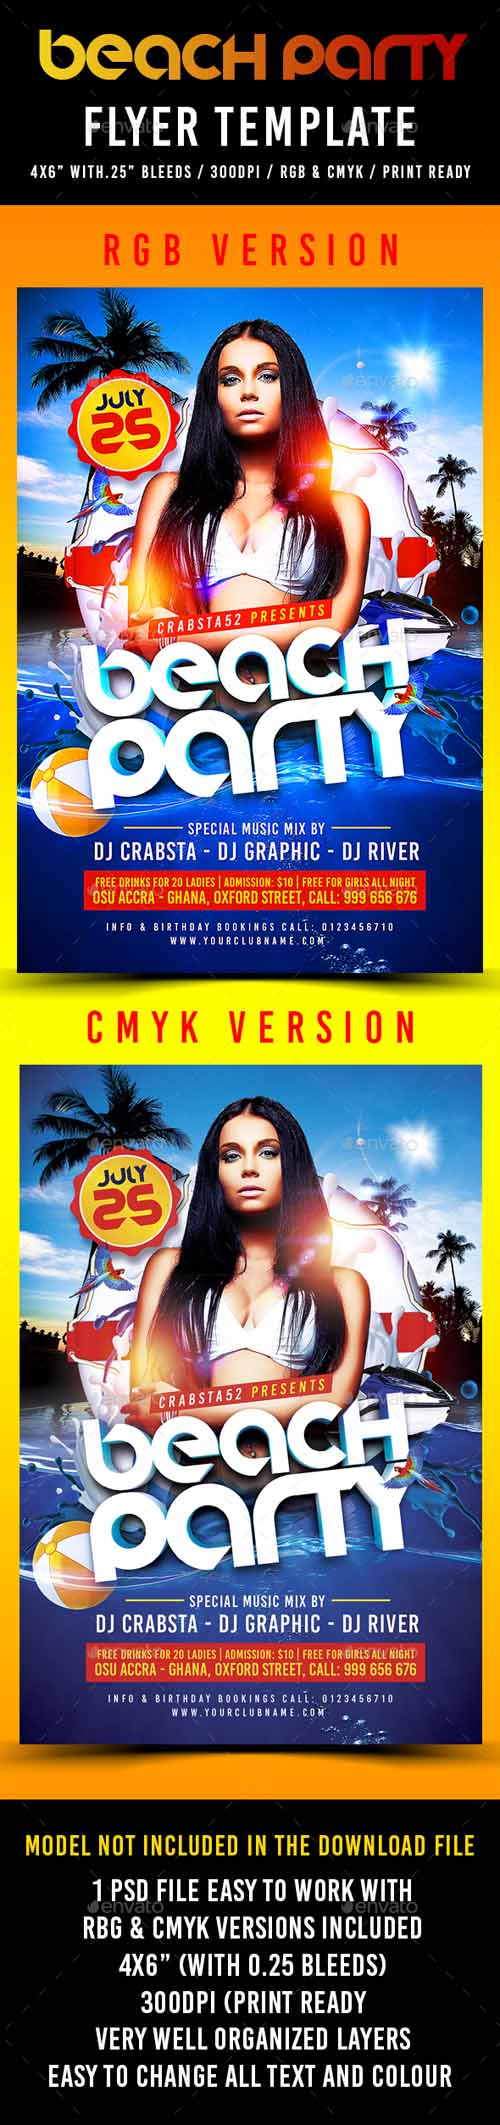 Beach Party Flyer Template 15476647